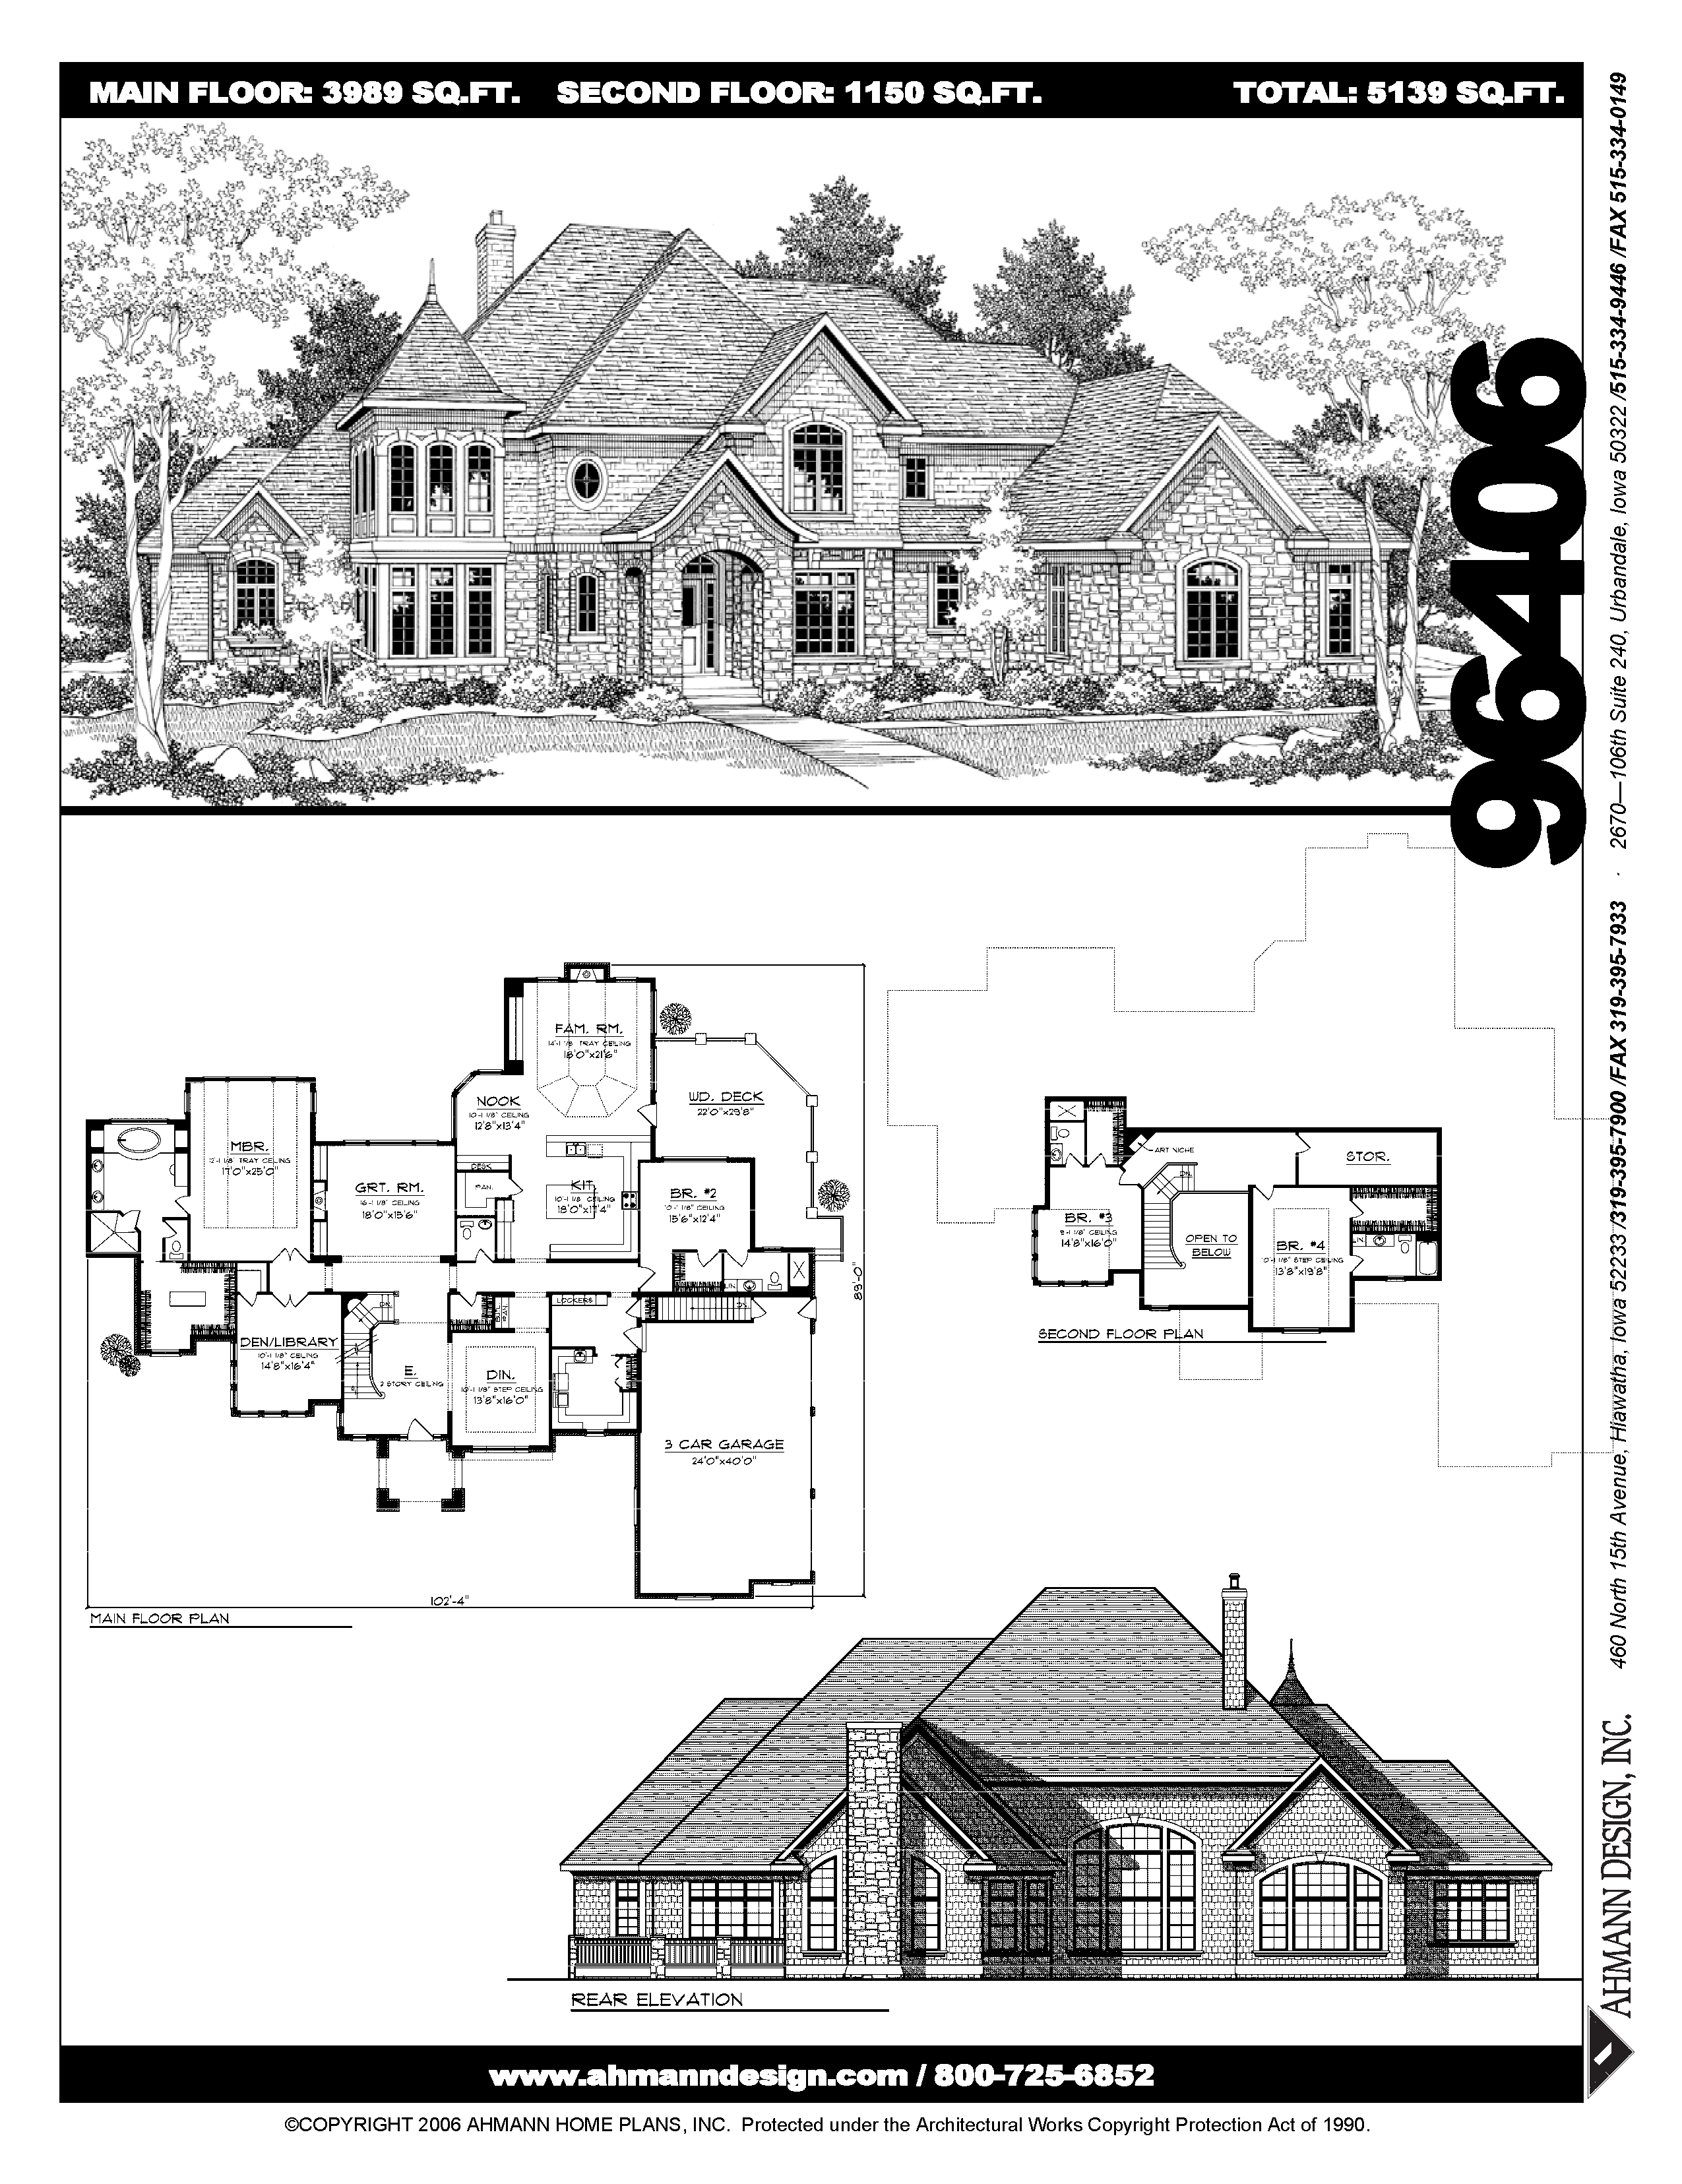 Ahmann Design Plan 96406 This Grand European Inspired Home Features Over 5 000 Square Feet Of Living Space The Two Story House Plans House Plans Floor Plans